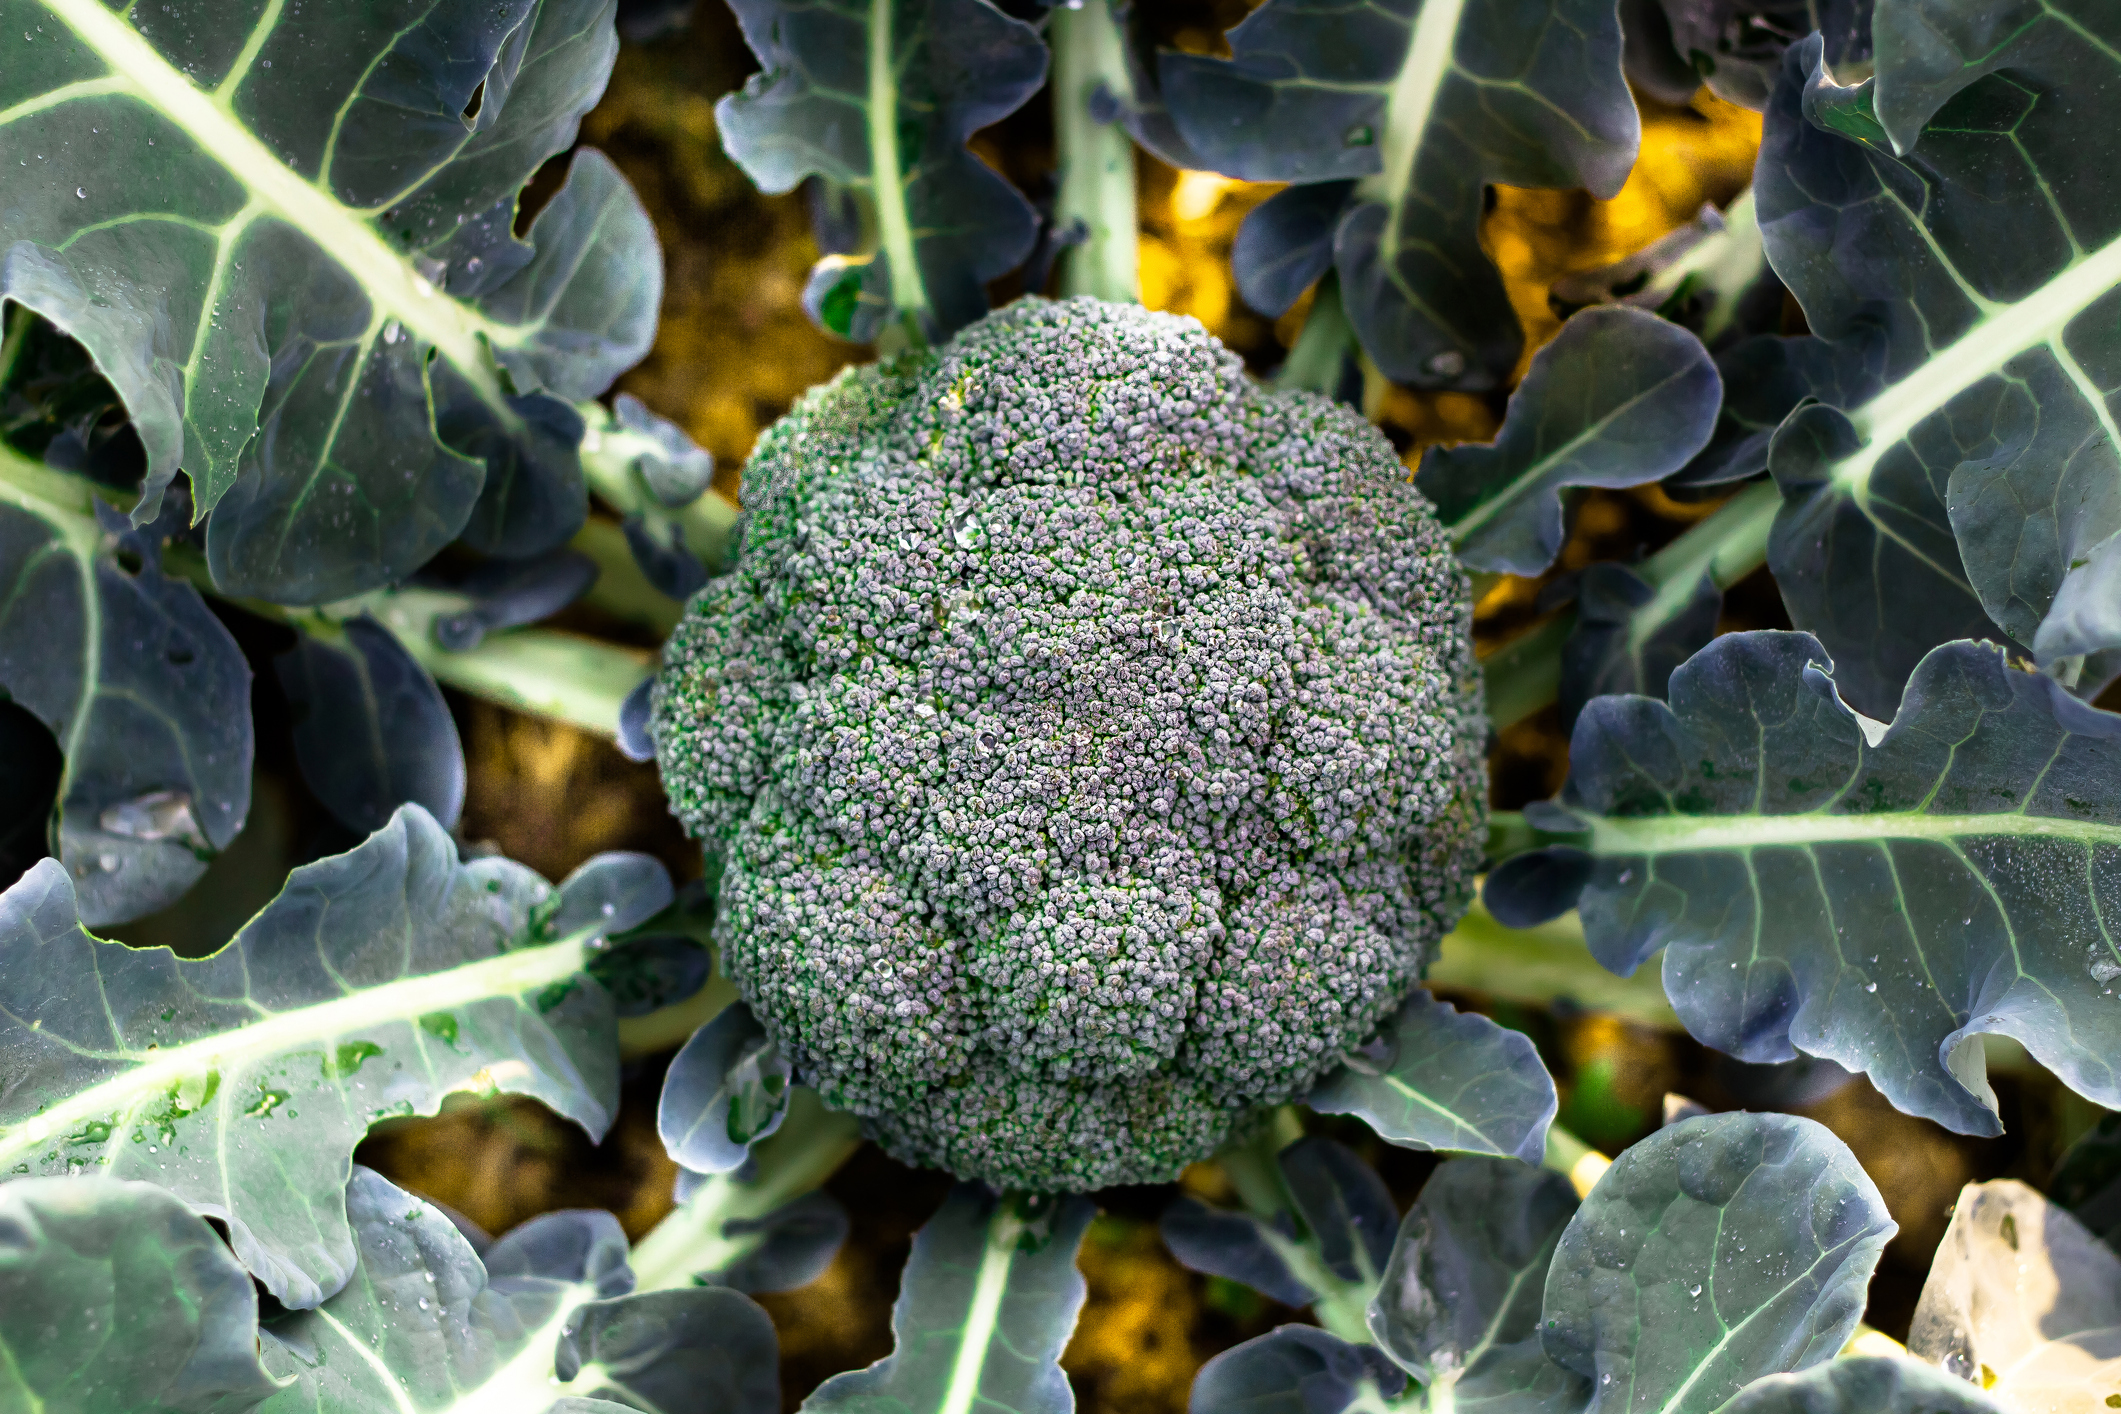 GettyImages-637096272-broccoli.jpg